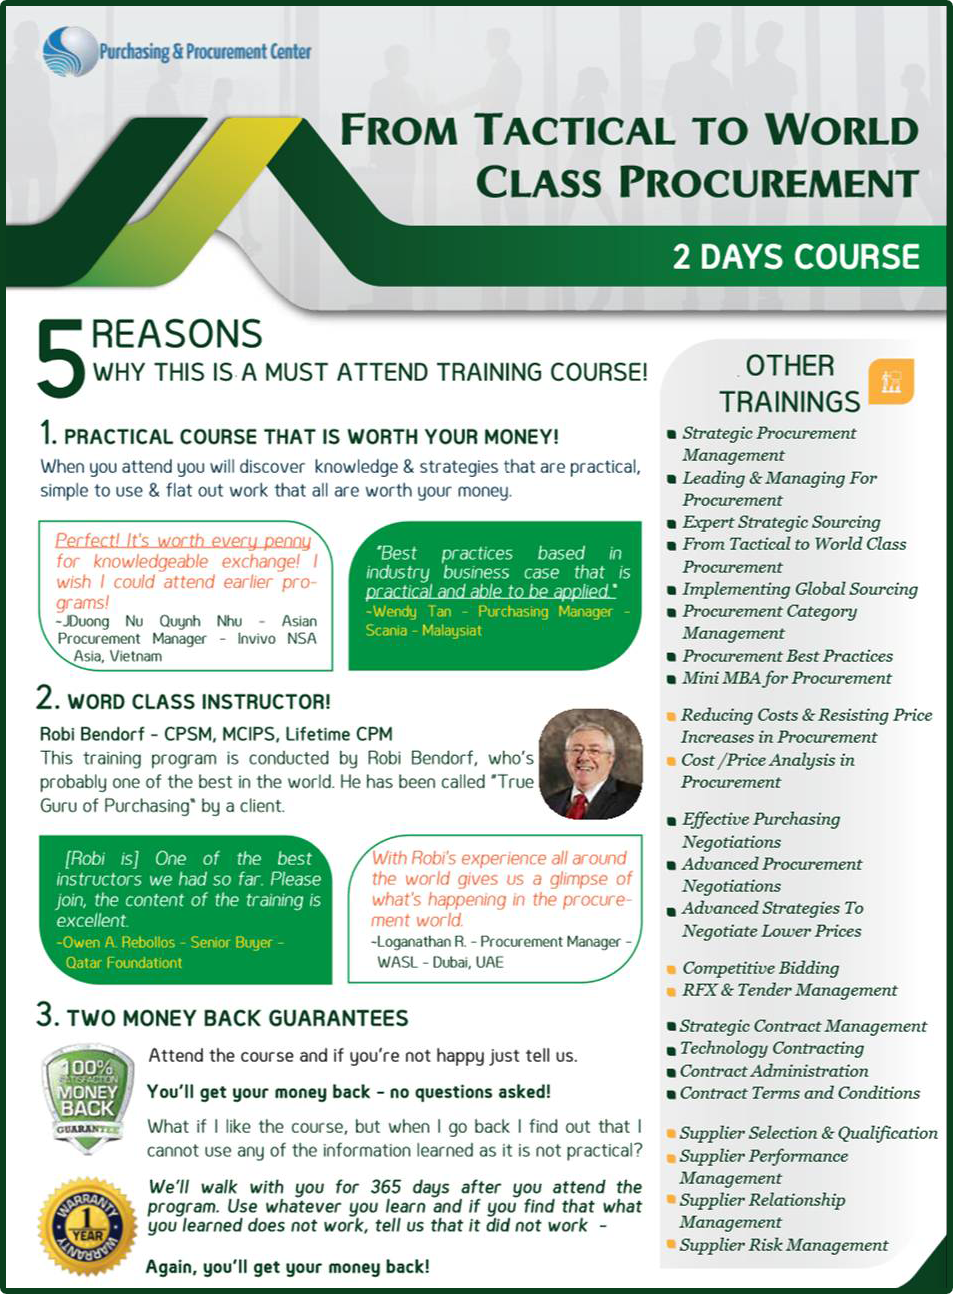 From Tactical to World Class Procurement